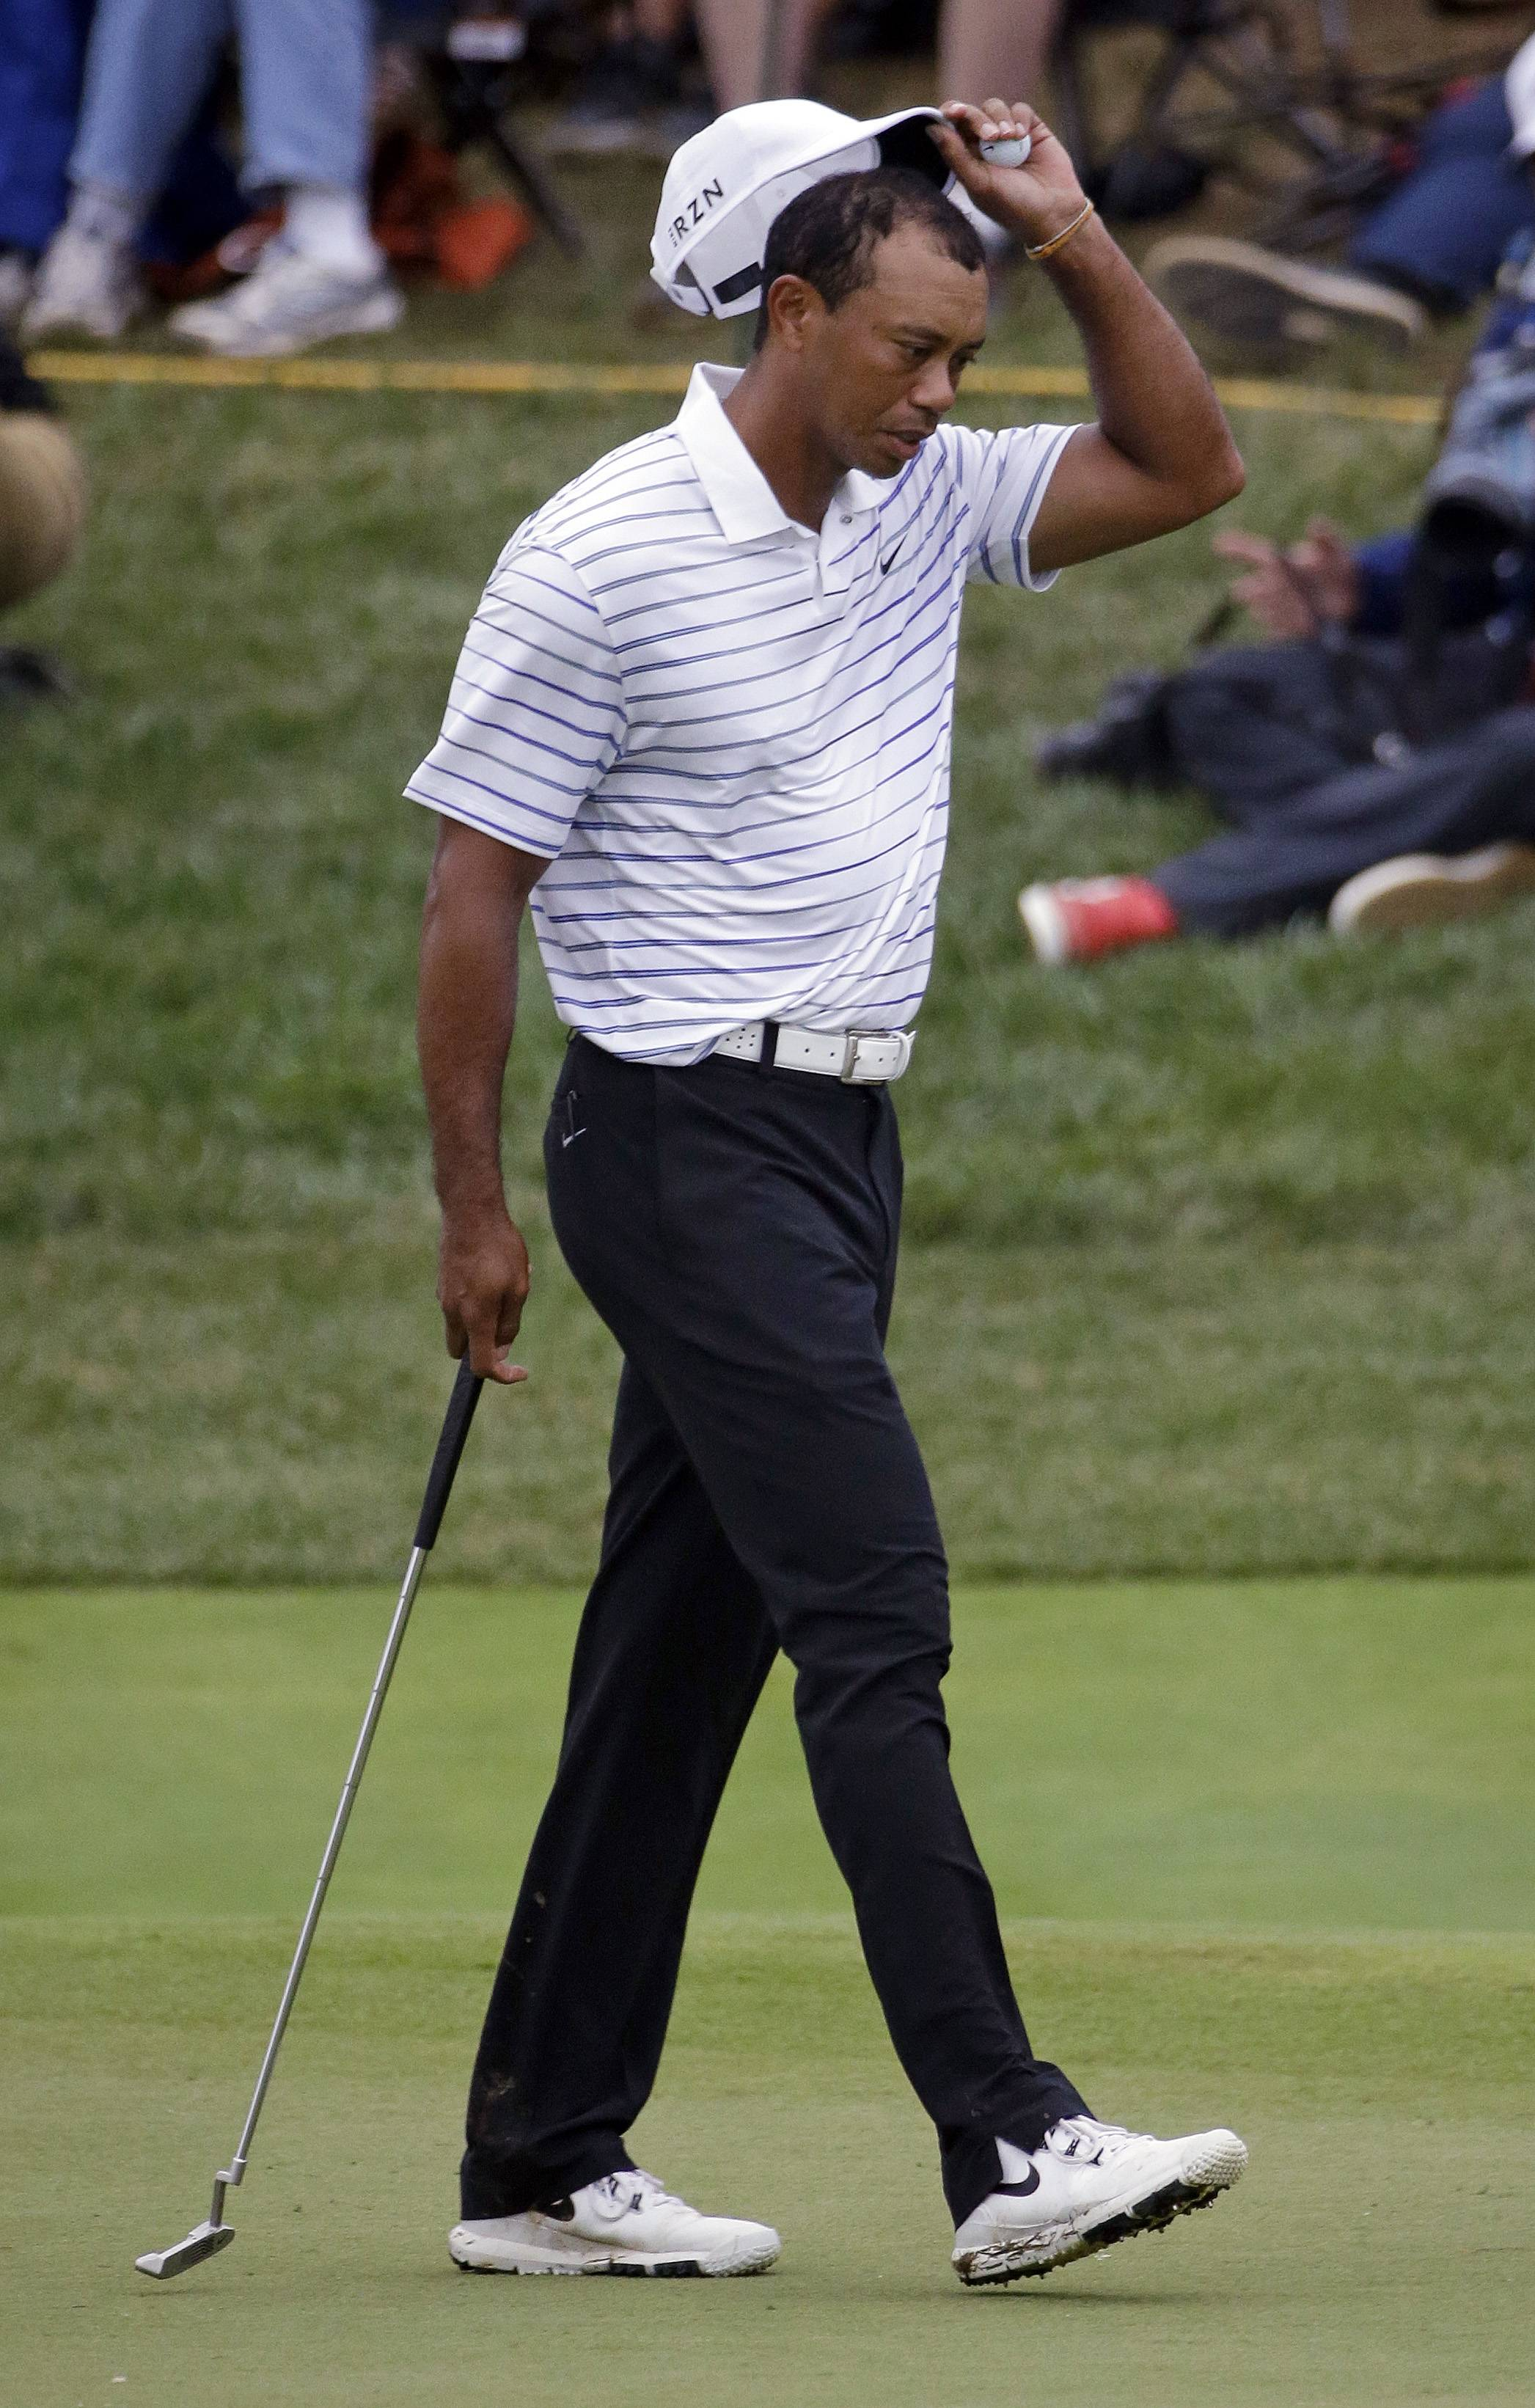 Tiger Woods walks up the 18 green during the second round of the PGA Championship golf tournament at Valhalla Golf Club on Friday, Aug. 8, 2014, in Louisville, Ky.